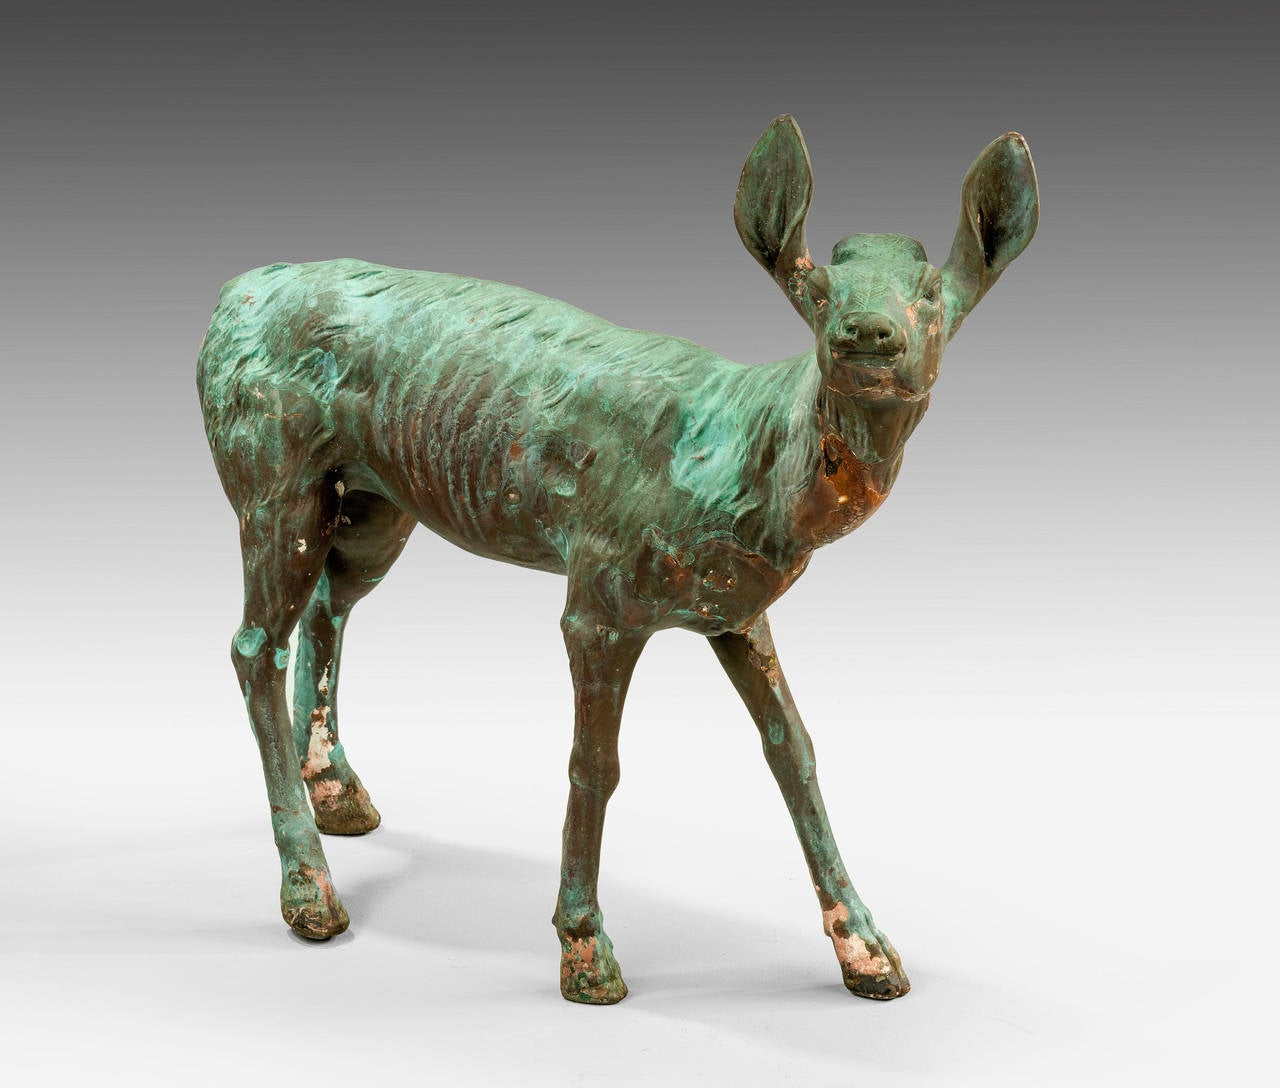 A charming cold cast bronze figure of a fawn. Well patinated to various shades of green and brown.